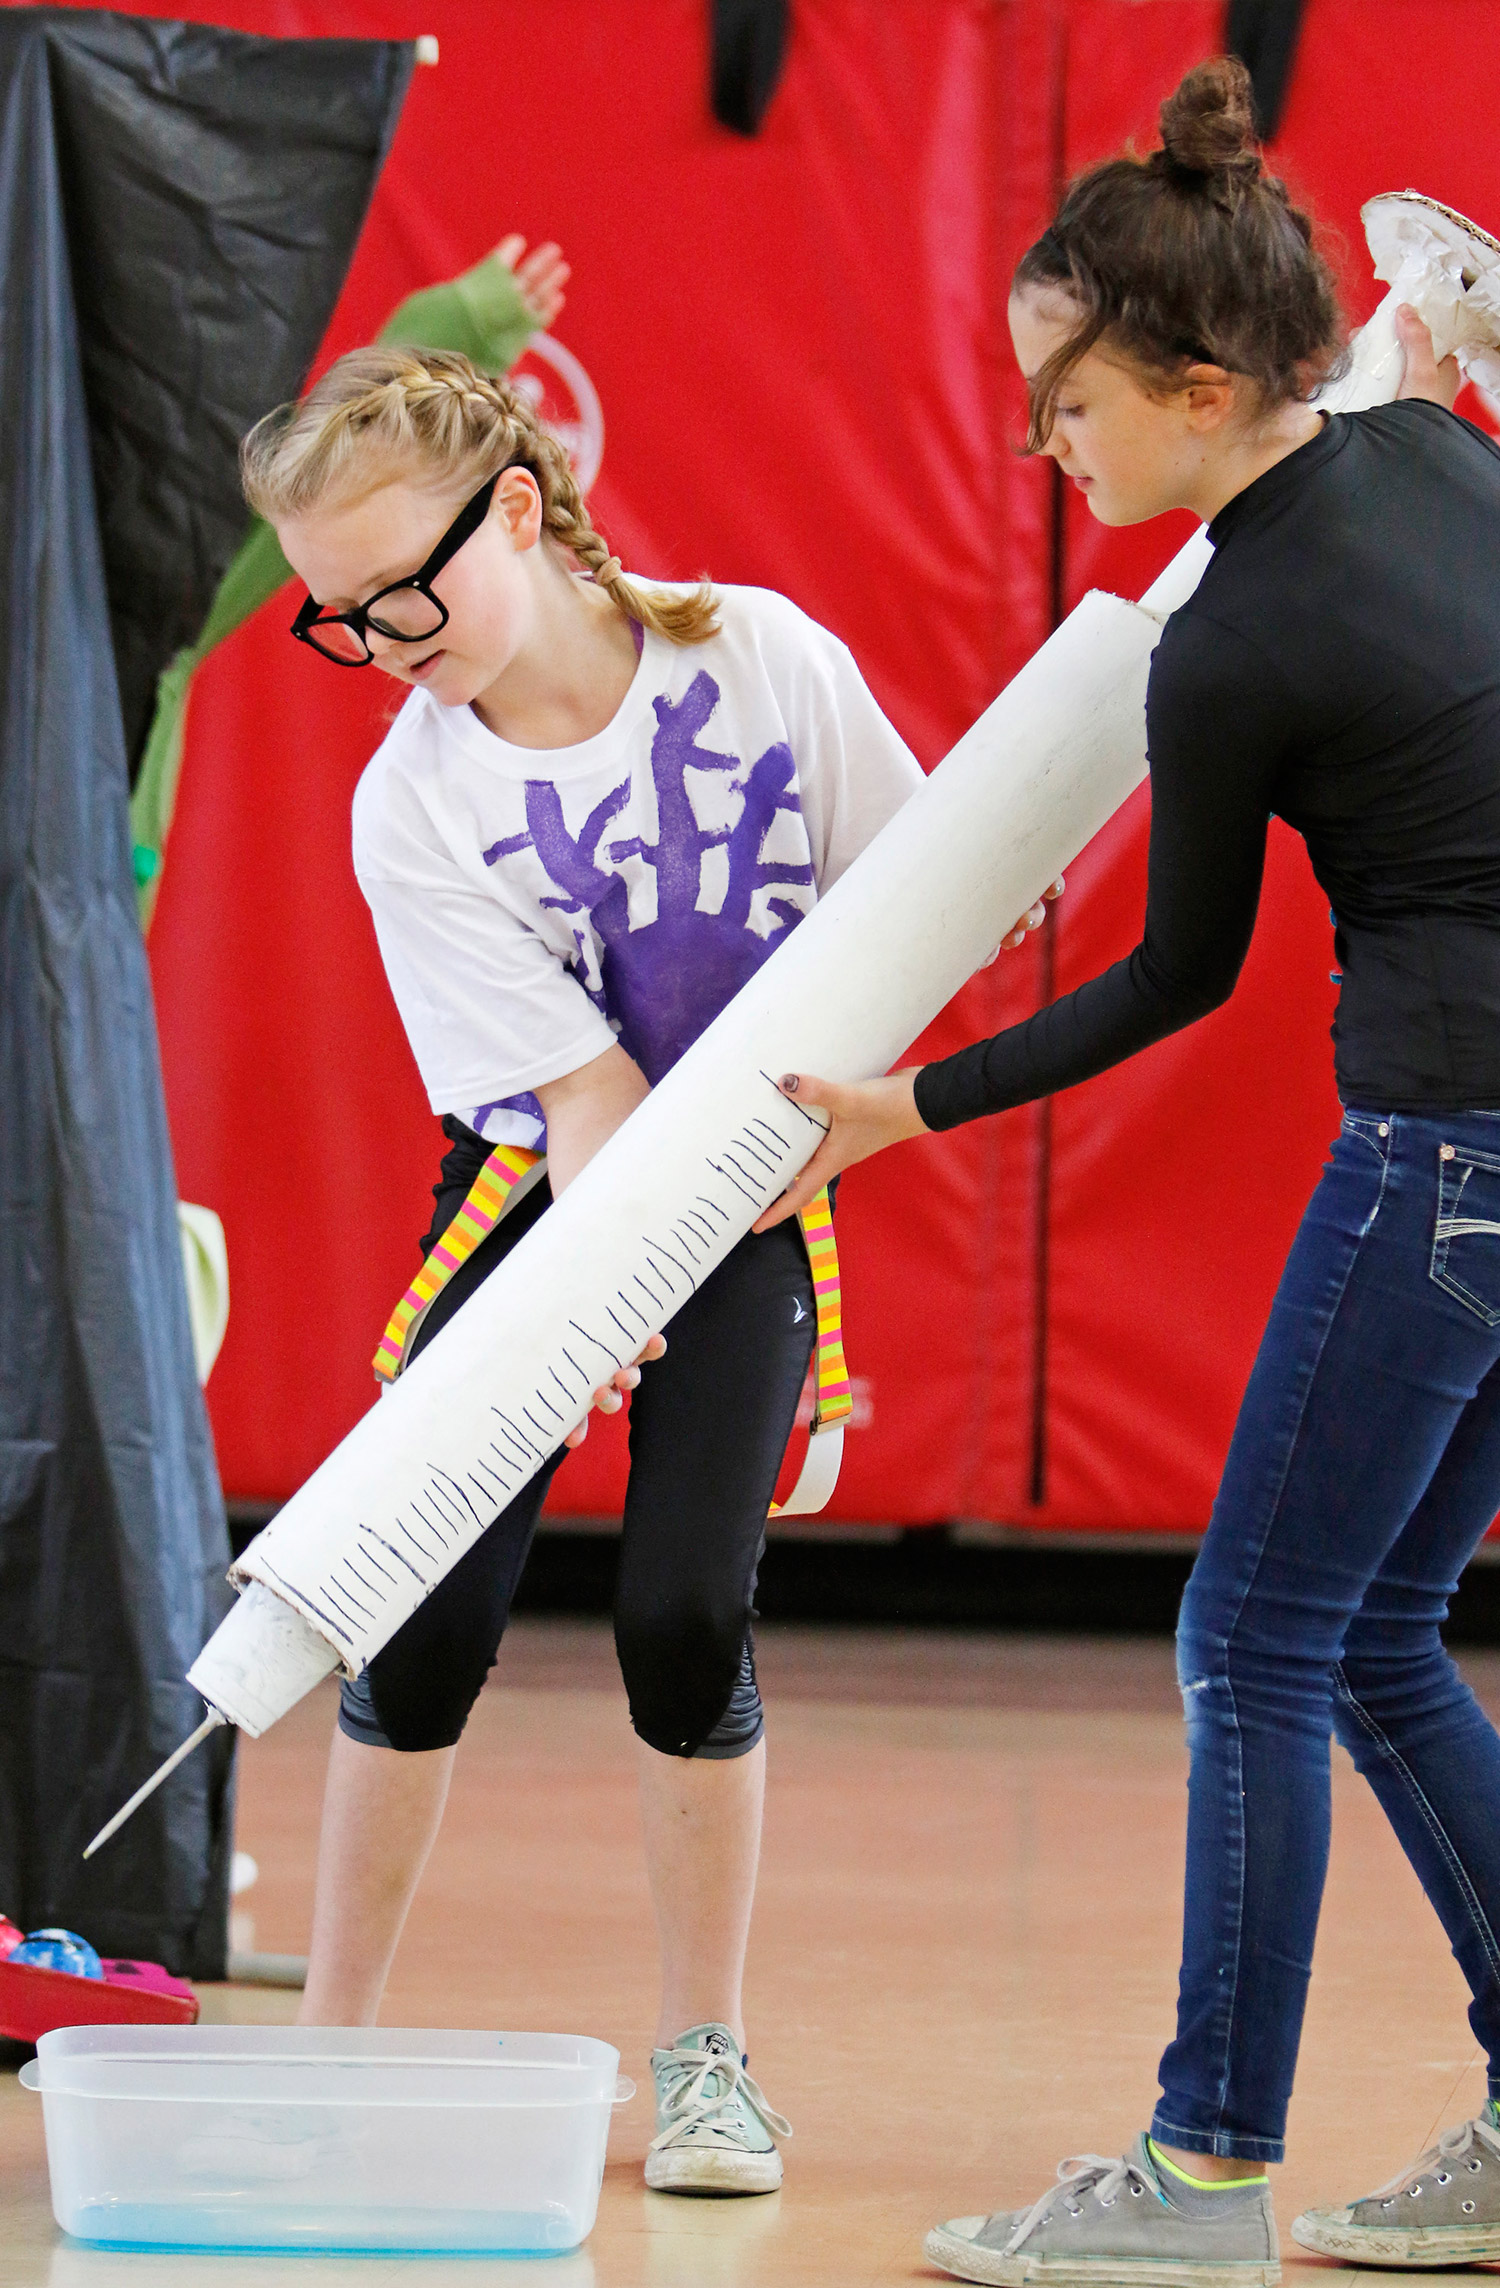 """Lyseth Elementary School fifth graders Emily Seavey and Sammy Desjardins work together to lift a giant syringe during a rehearsal of their team's production """"No-cycle, Recycle"""" that will be performed at the Odyssey of the MInd World Finals in Iowa in May."""